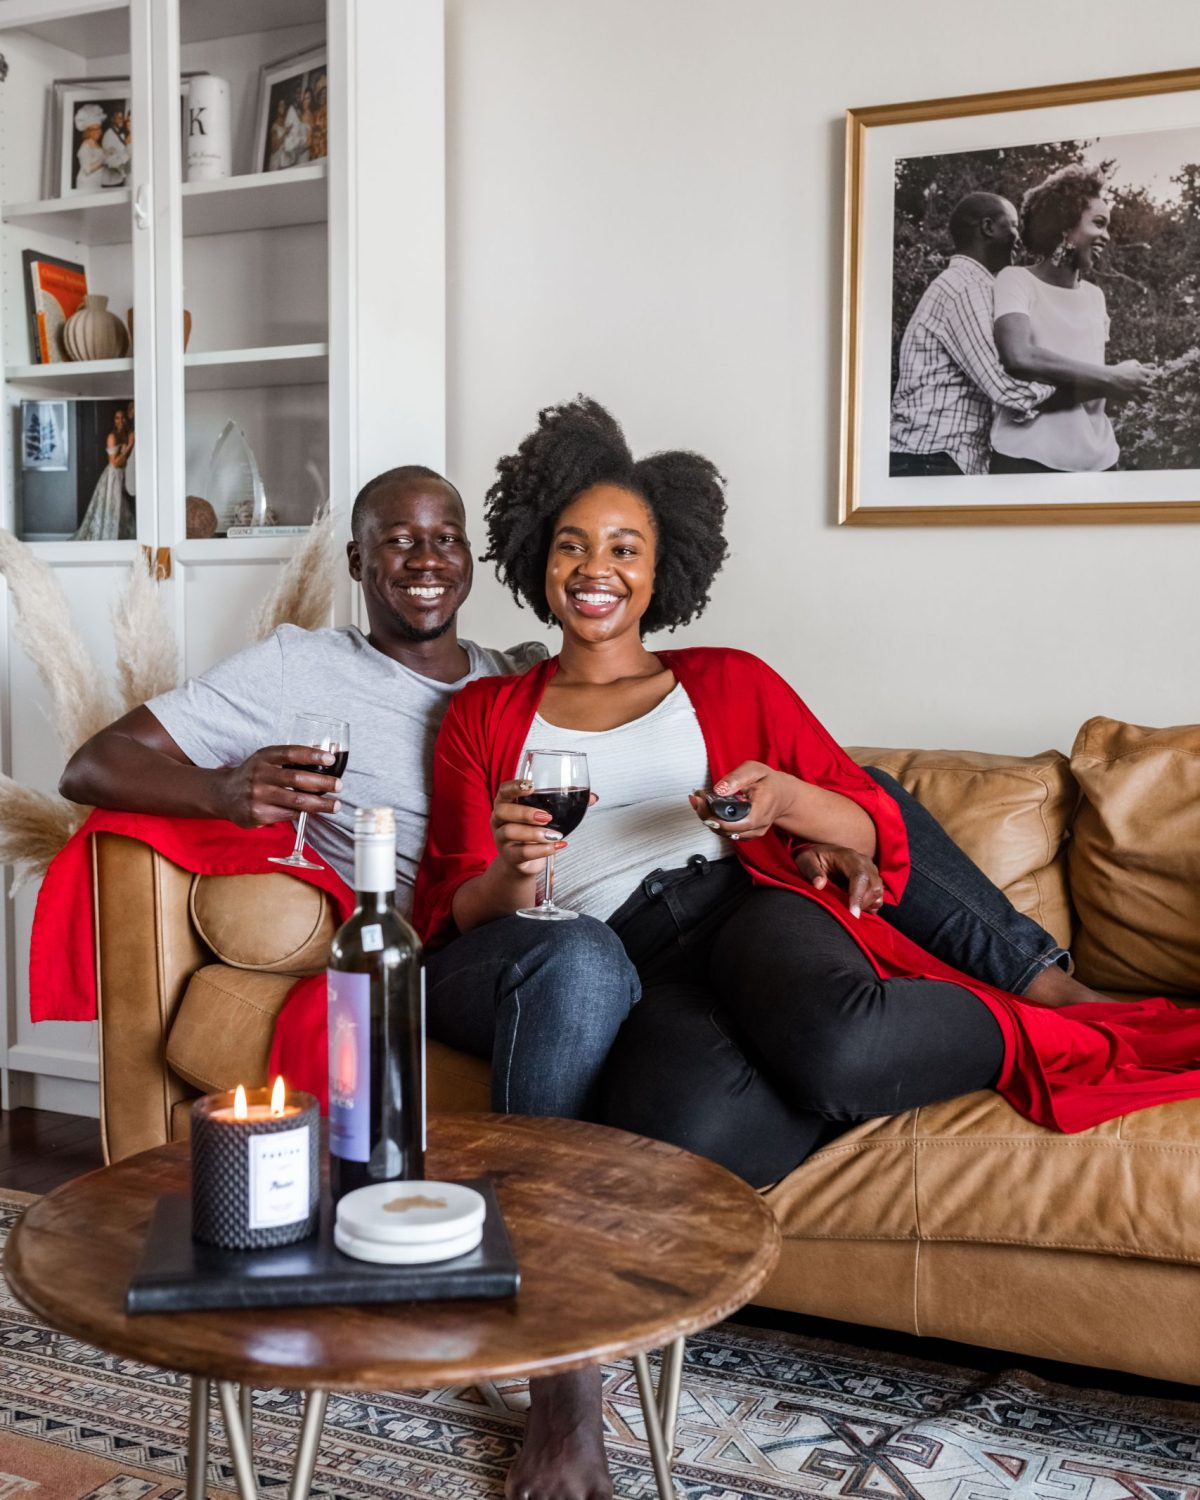 Ijeoma and Jonathan Kola cuddling on couch with wine on Valentine's Day - Stay at Home Valentine's Day Ideas